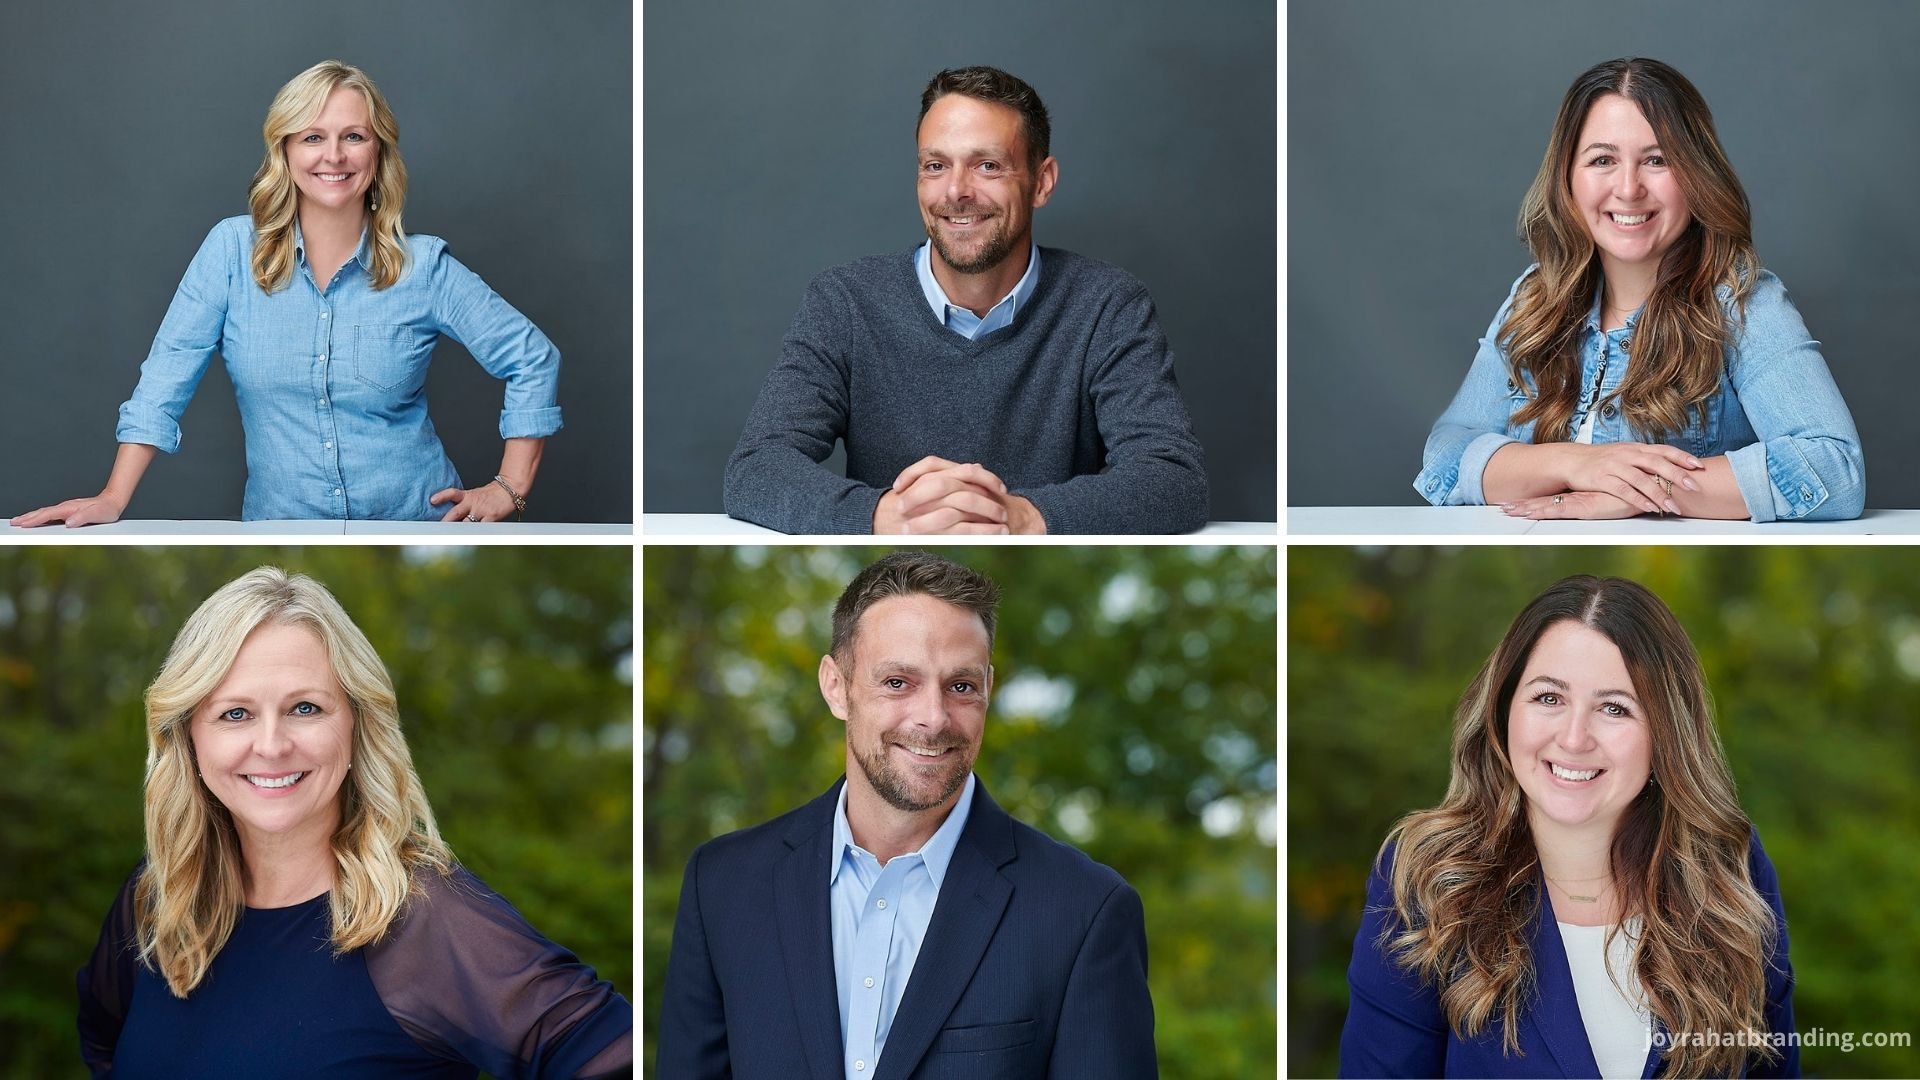 headshots for real estate team outdoor